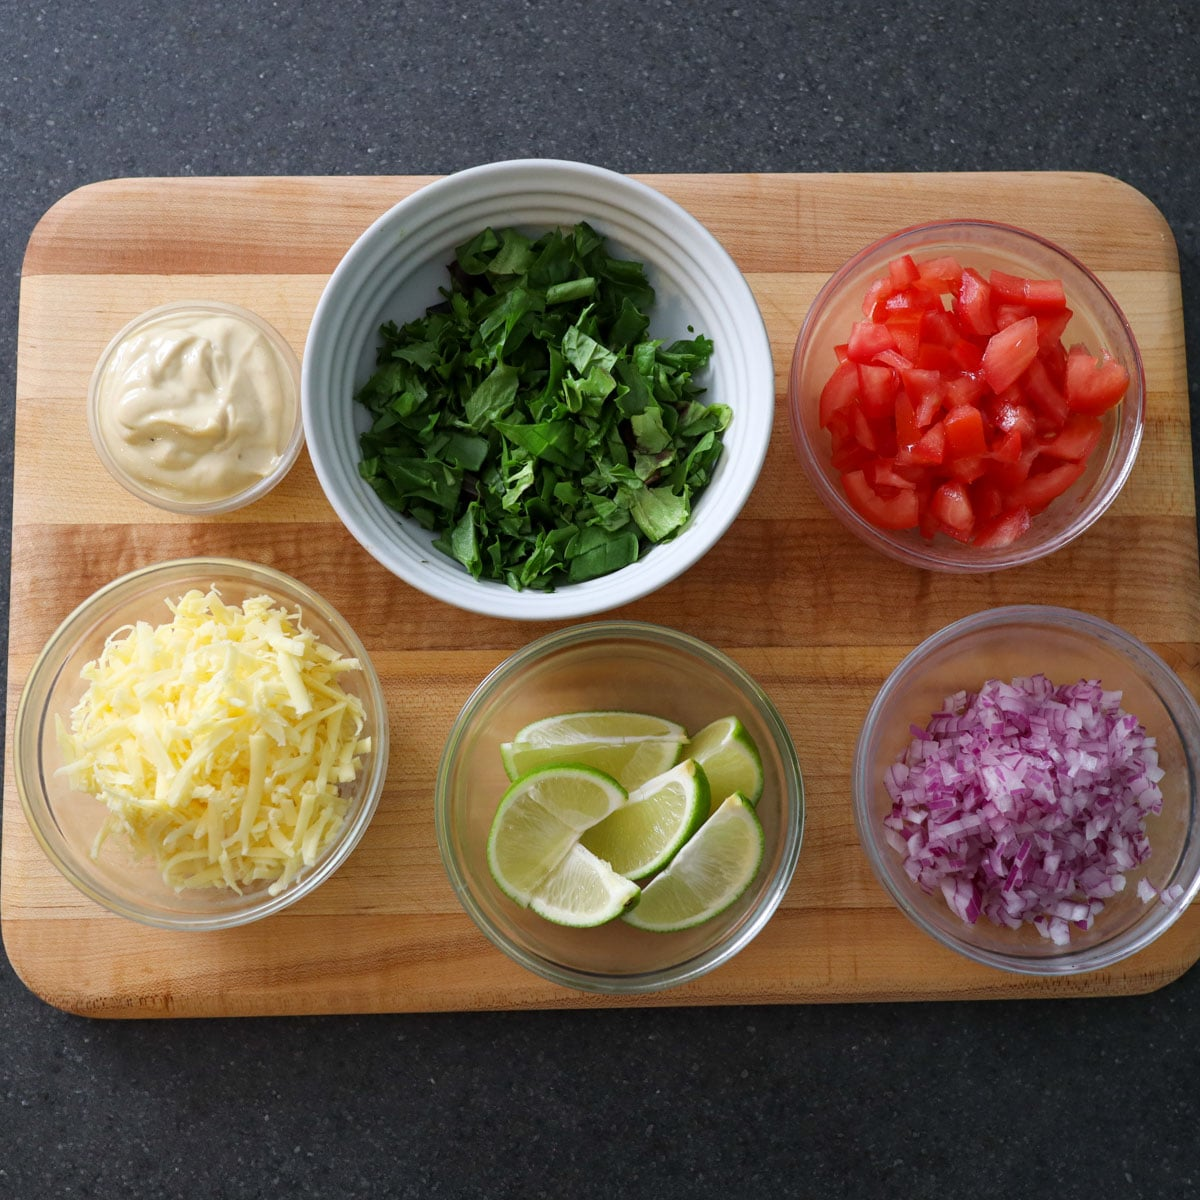 Grilled chicken tacos ingredients in bowls